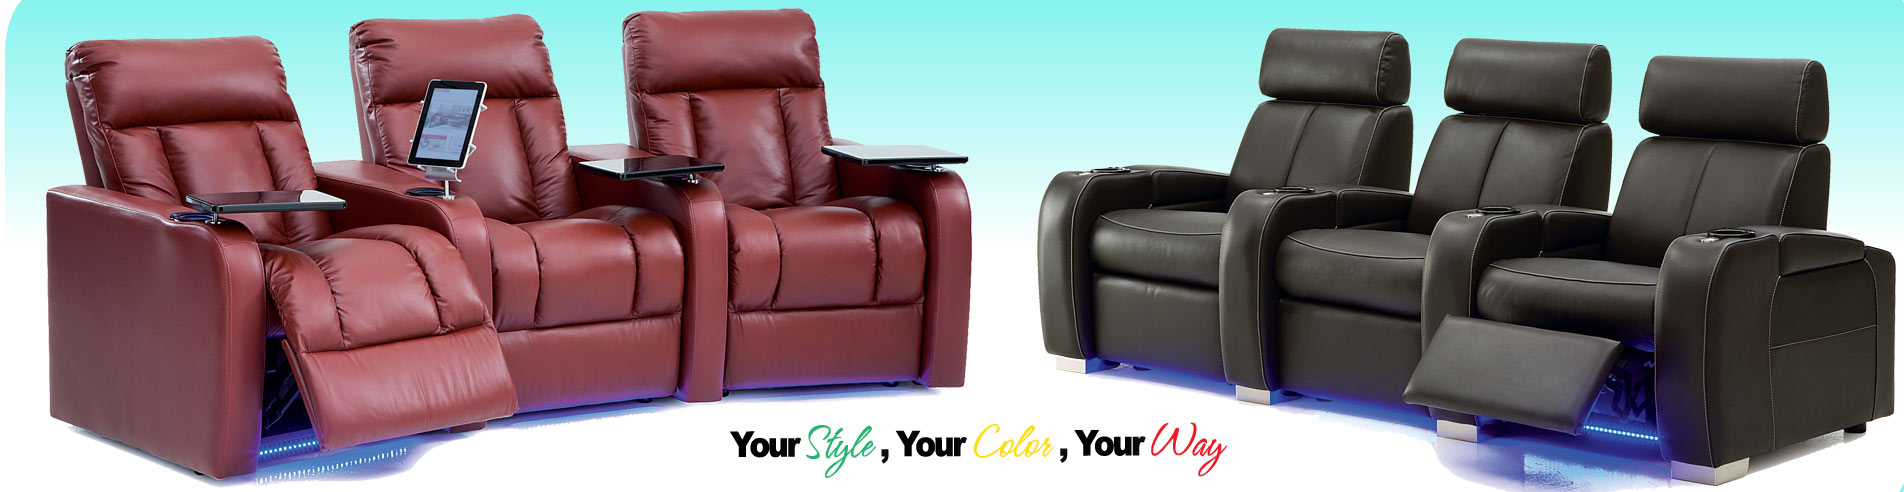 Leather Home Theater Furniture